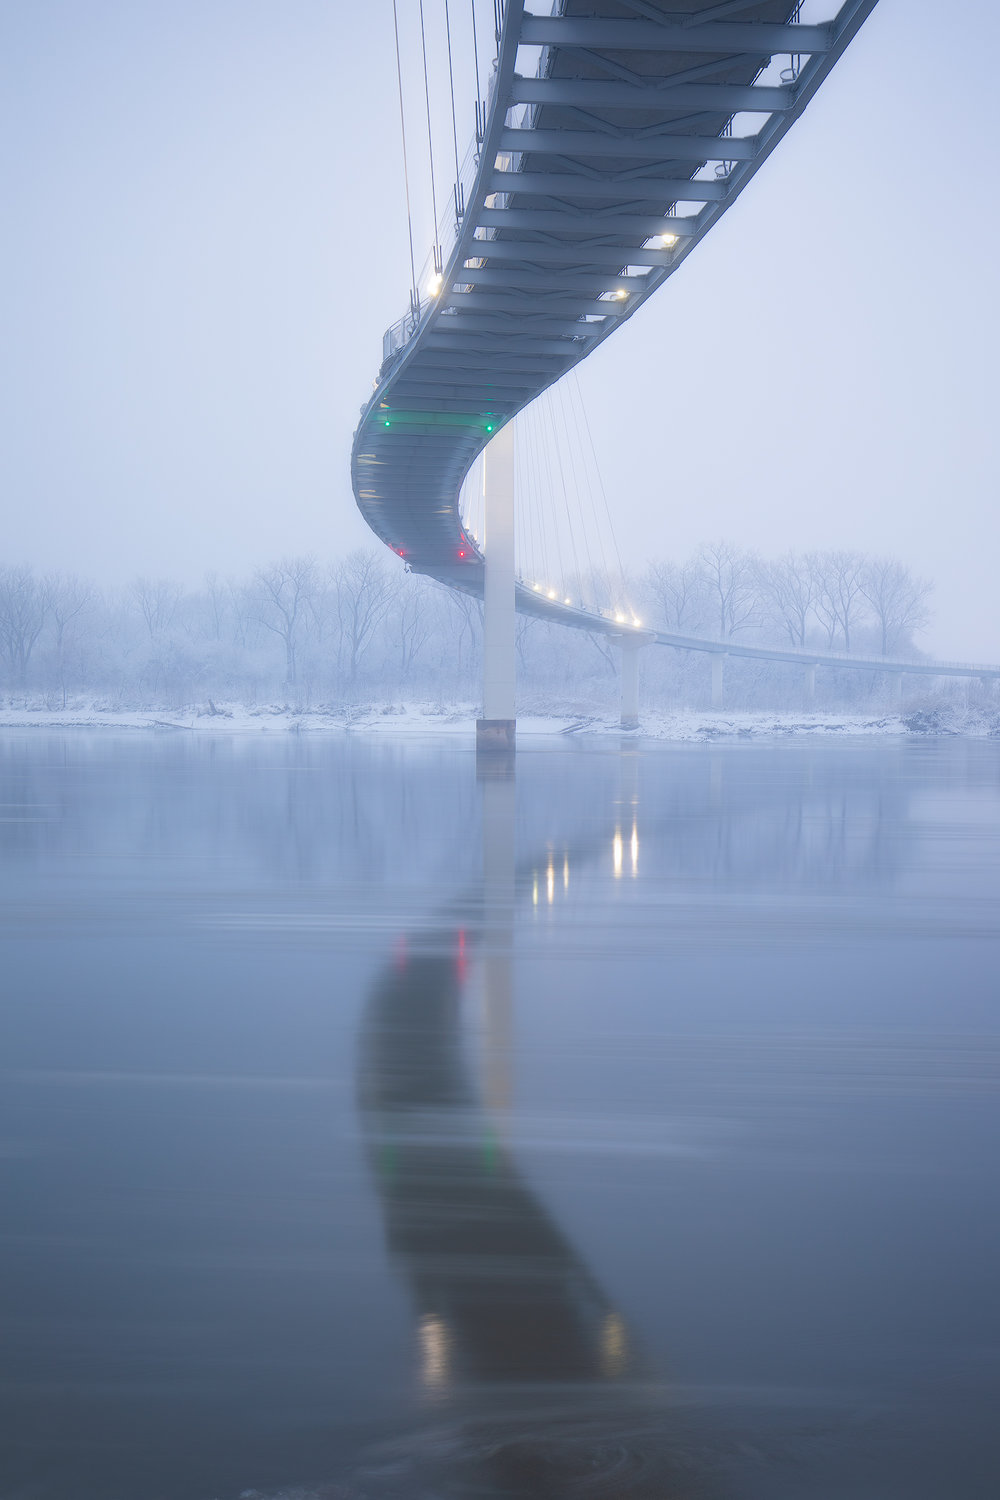 Bob Kerry Pedestrian Bridge - 35mm - ISO 100 - f/7.1 - 3.2 sec.